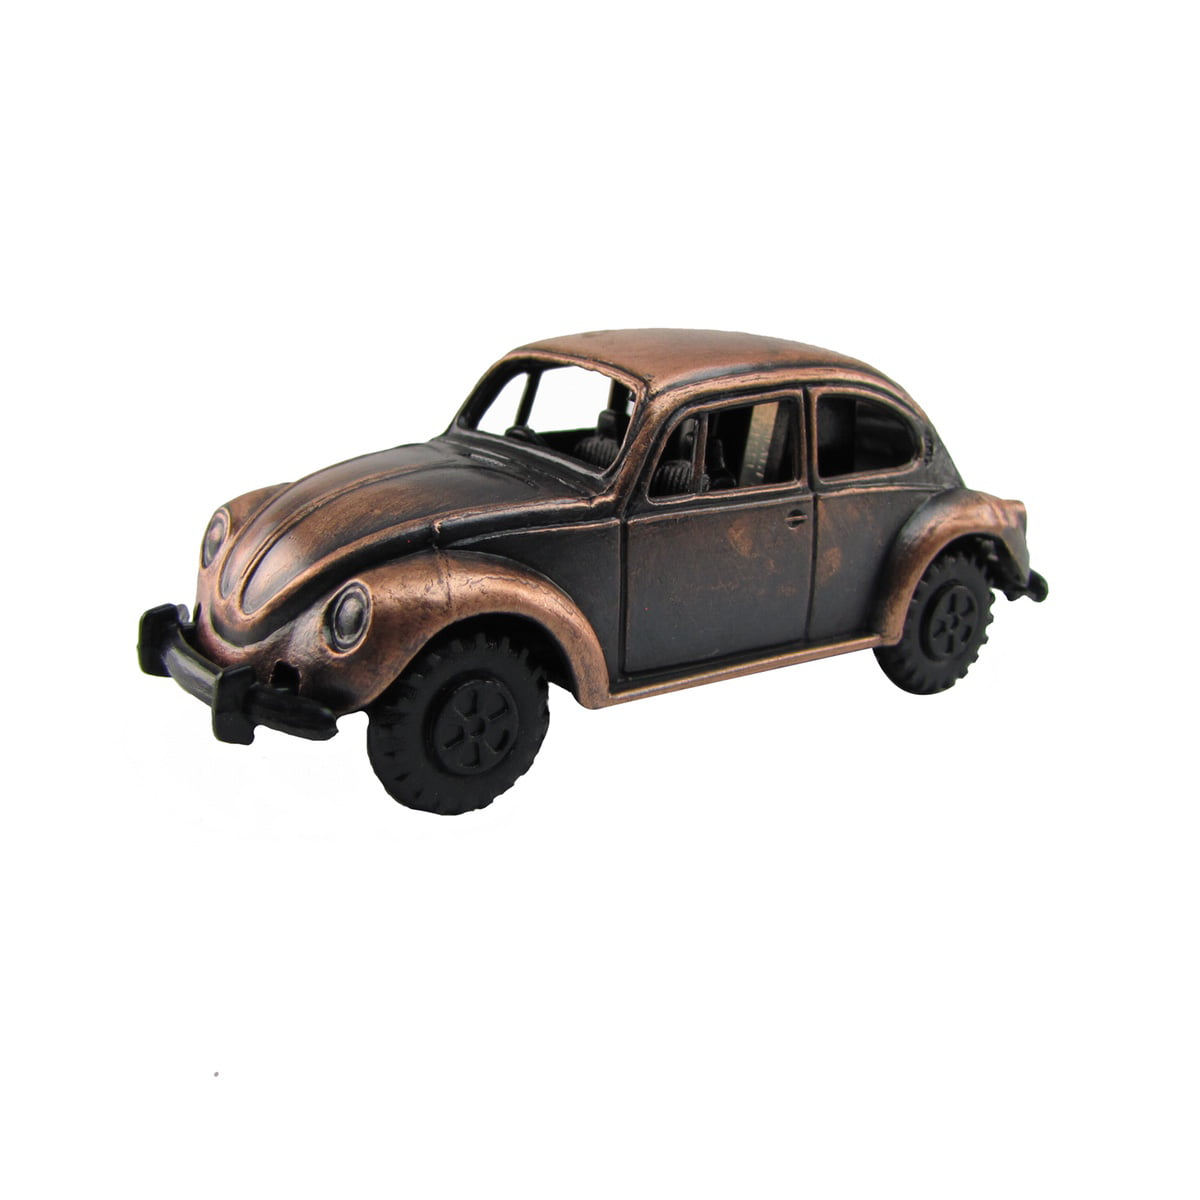 1:48 O Scale VW Bug Beetle Car Model Train Accessory Die Cast Pencil Sharpener by